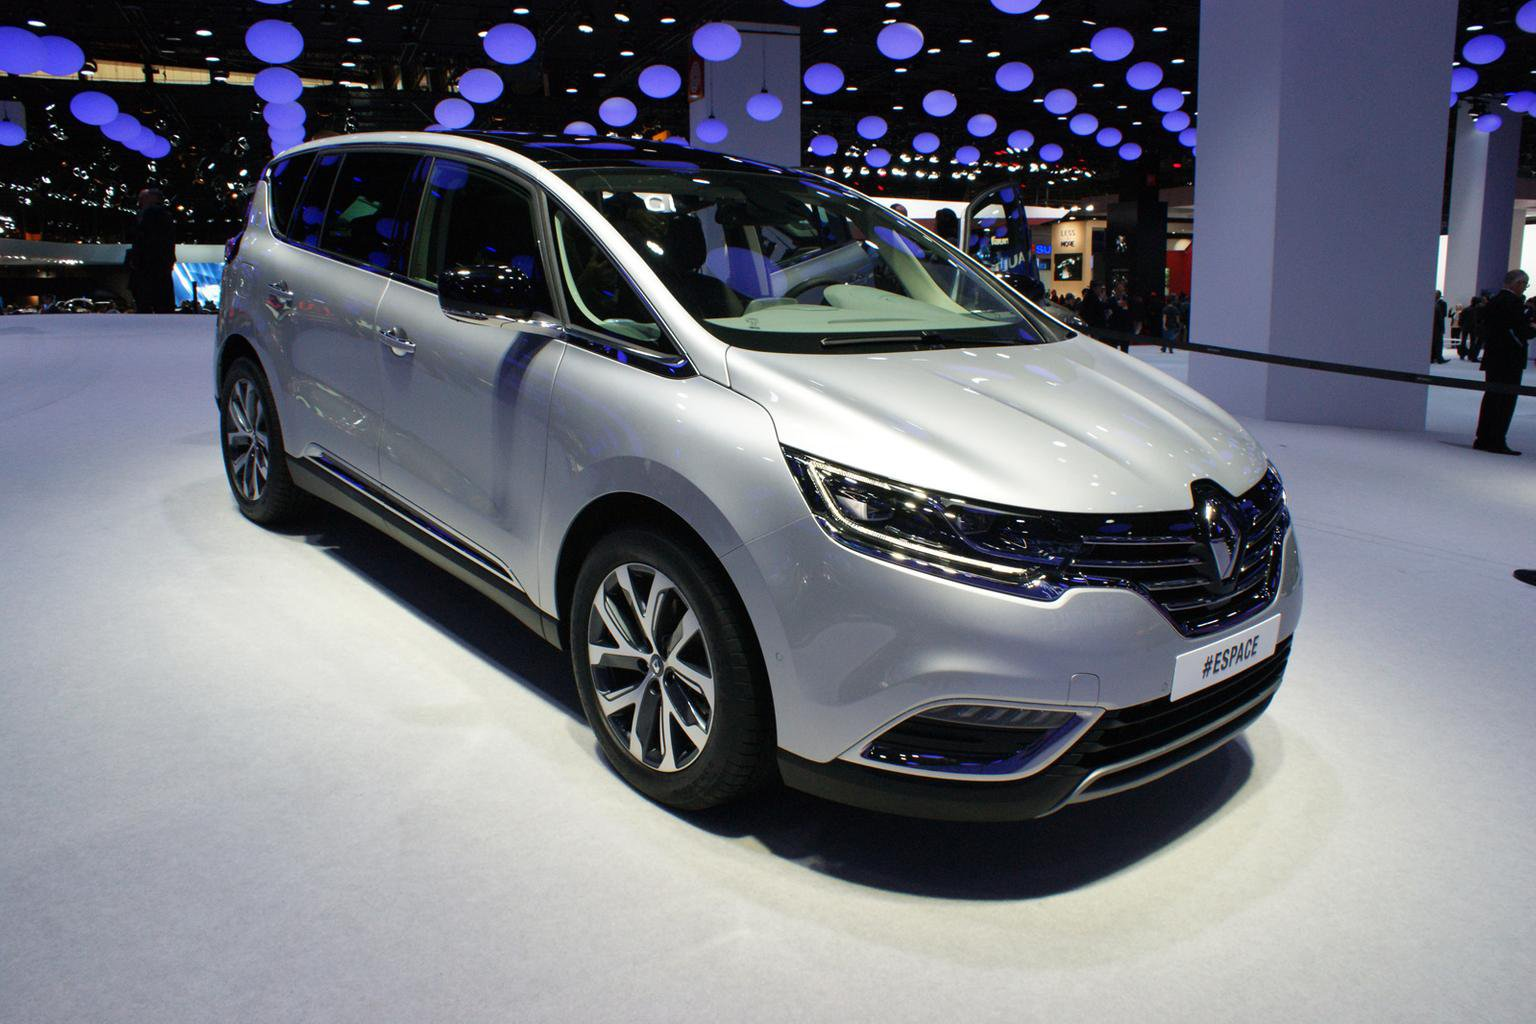 New Renault Espace could still come to the UK